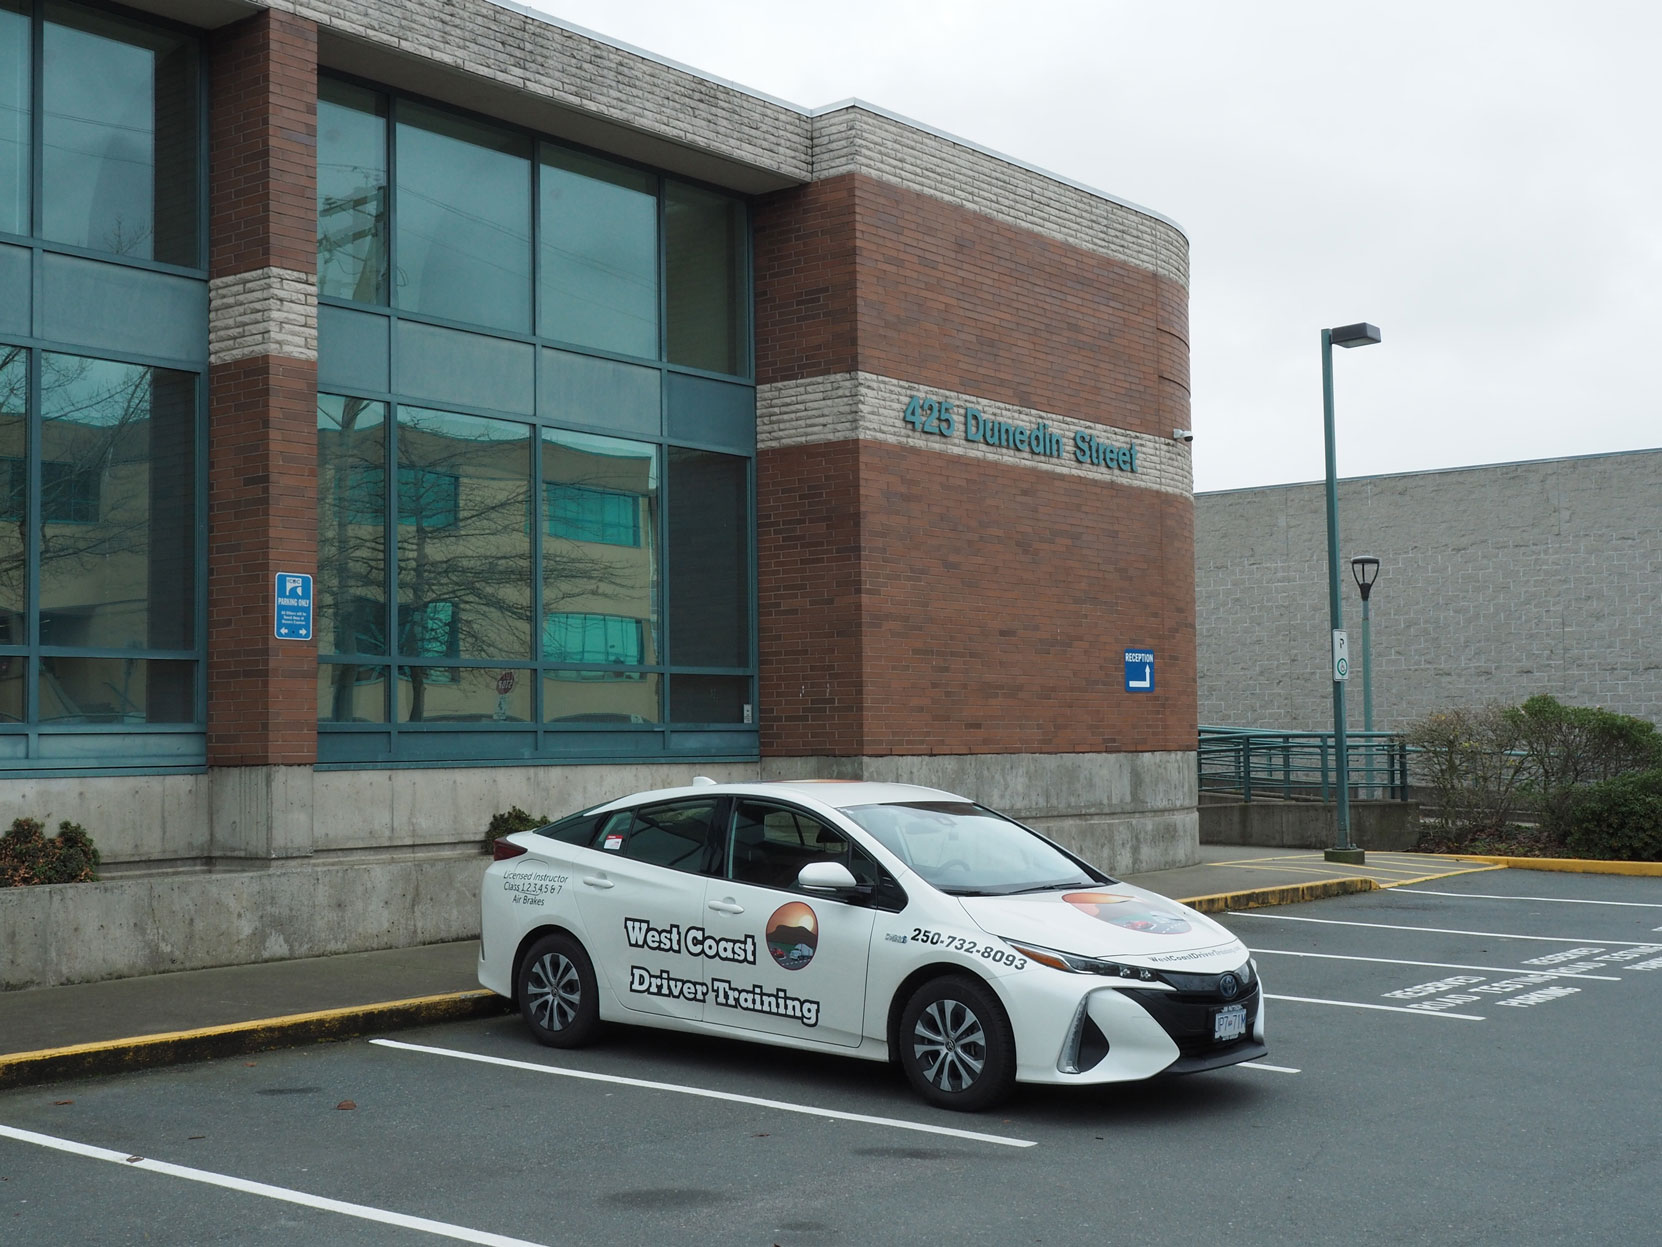 Our 2020 Toyota Prius Prime at the ICBC Driver Licensing office, 426 Dunedin Street, Victoria, BC (photo: West Coast Driver Training)